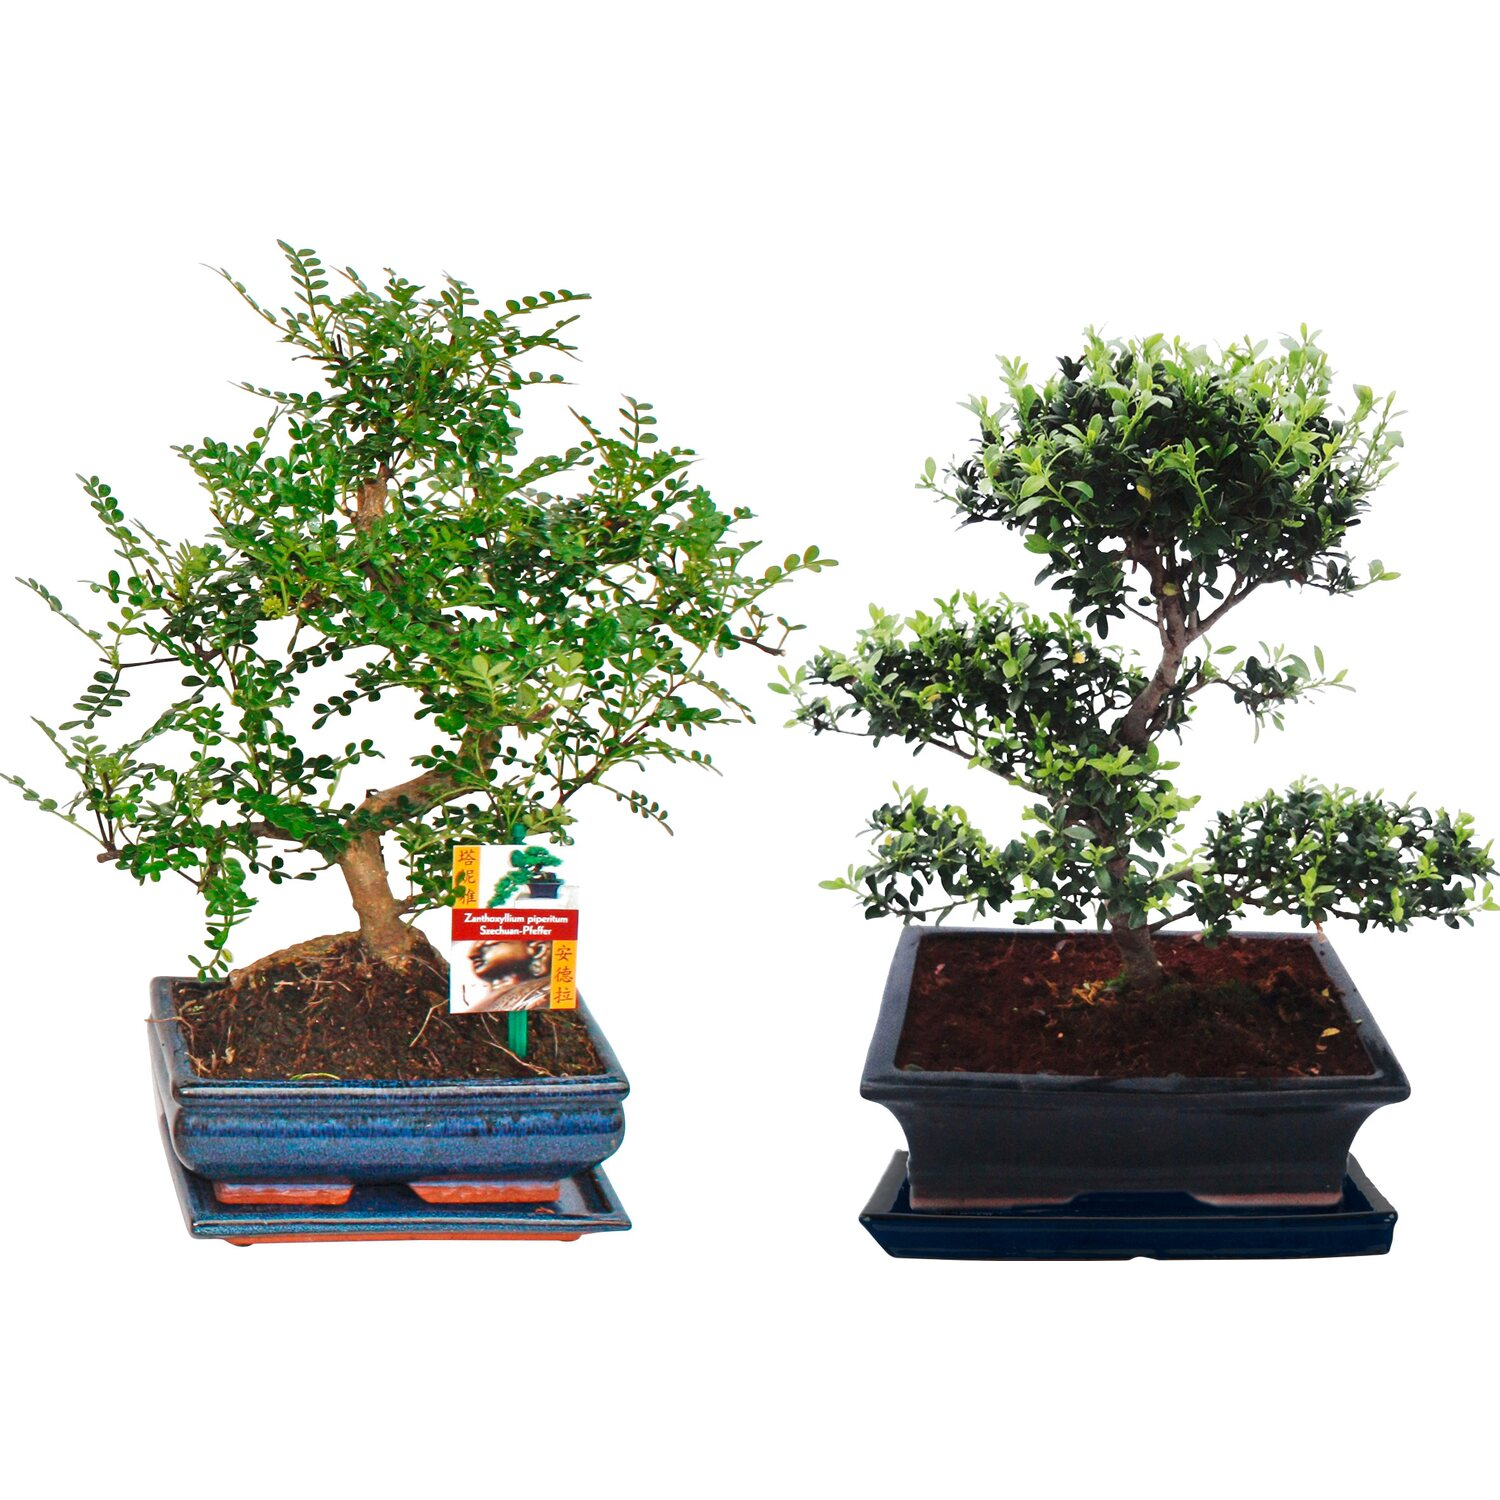 bonsai baum pflege pflege von bonsaibumen chinese elm bonsai baumpflege bonsaibaum australien. Black Bedroom Furniture Sets. Home Design Ideas